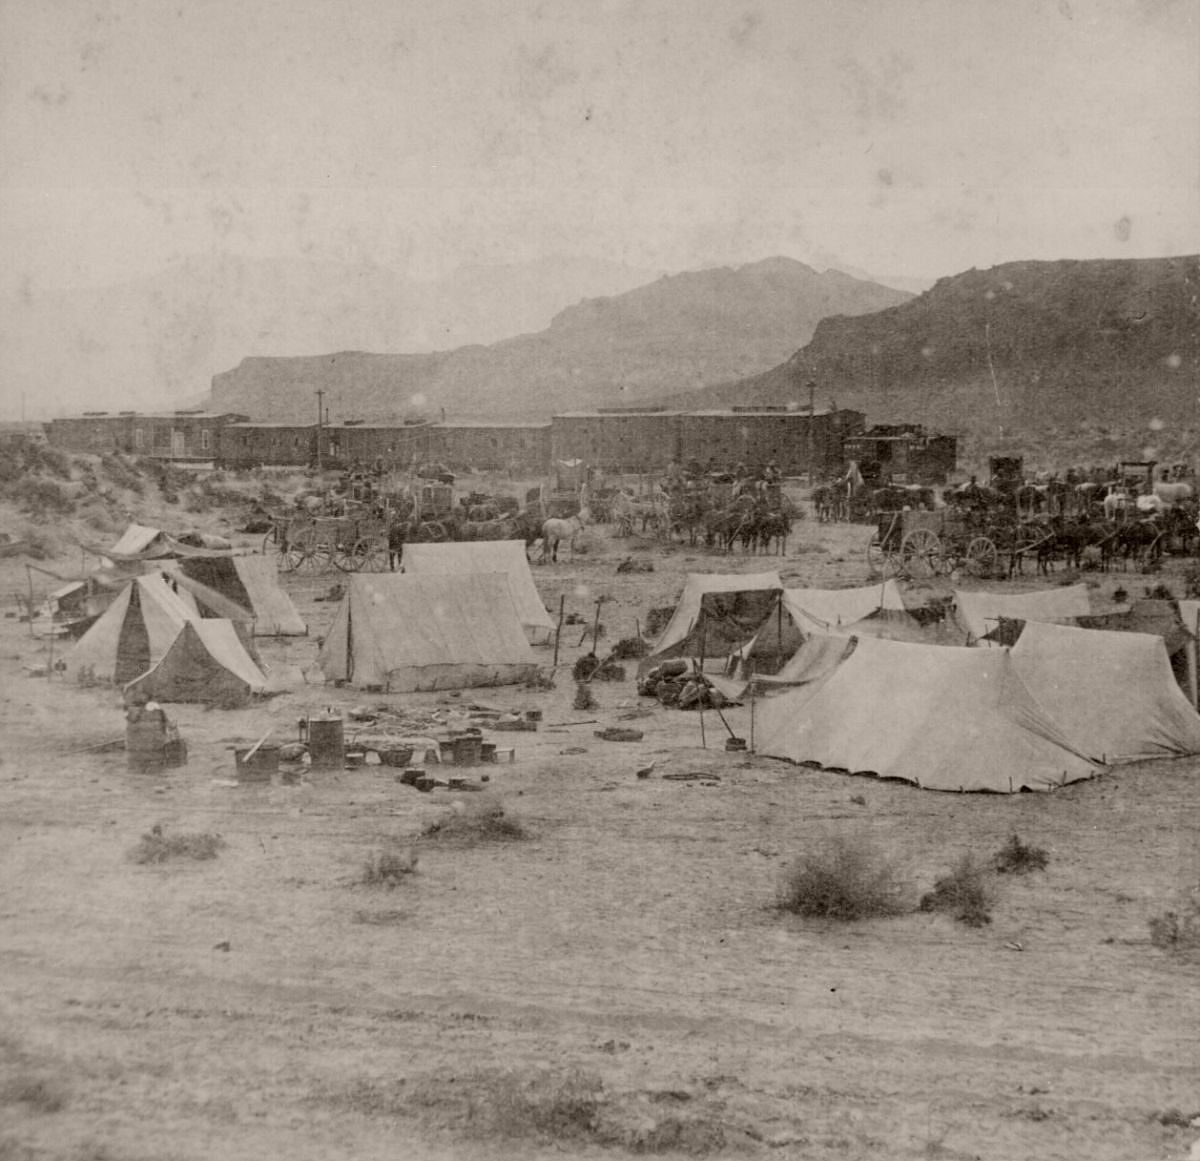 End of the Track. Near Humboldt River Canyon, Nevada. Campsite and train of the Central Pacific Railroad at foot of mountains, 1868.